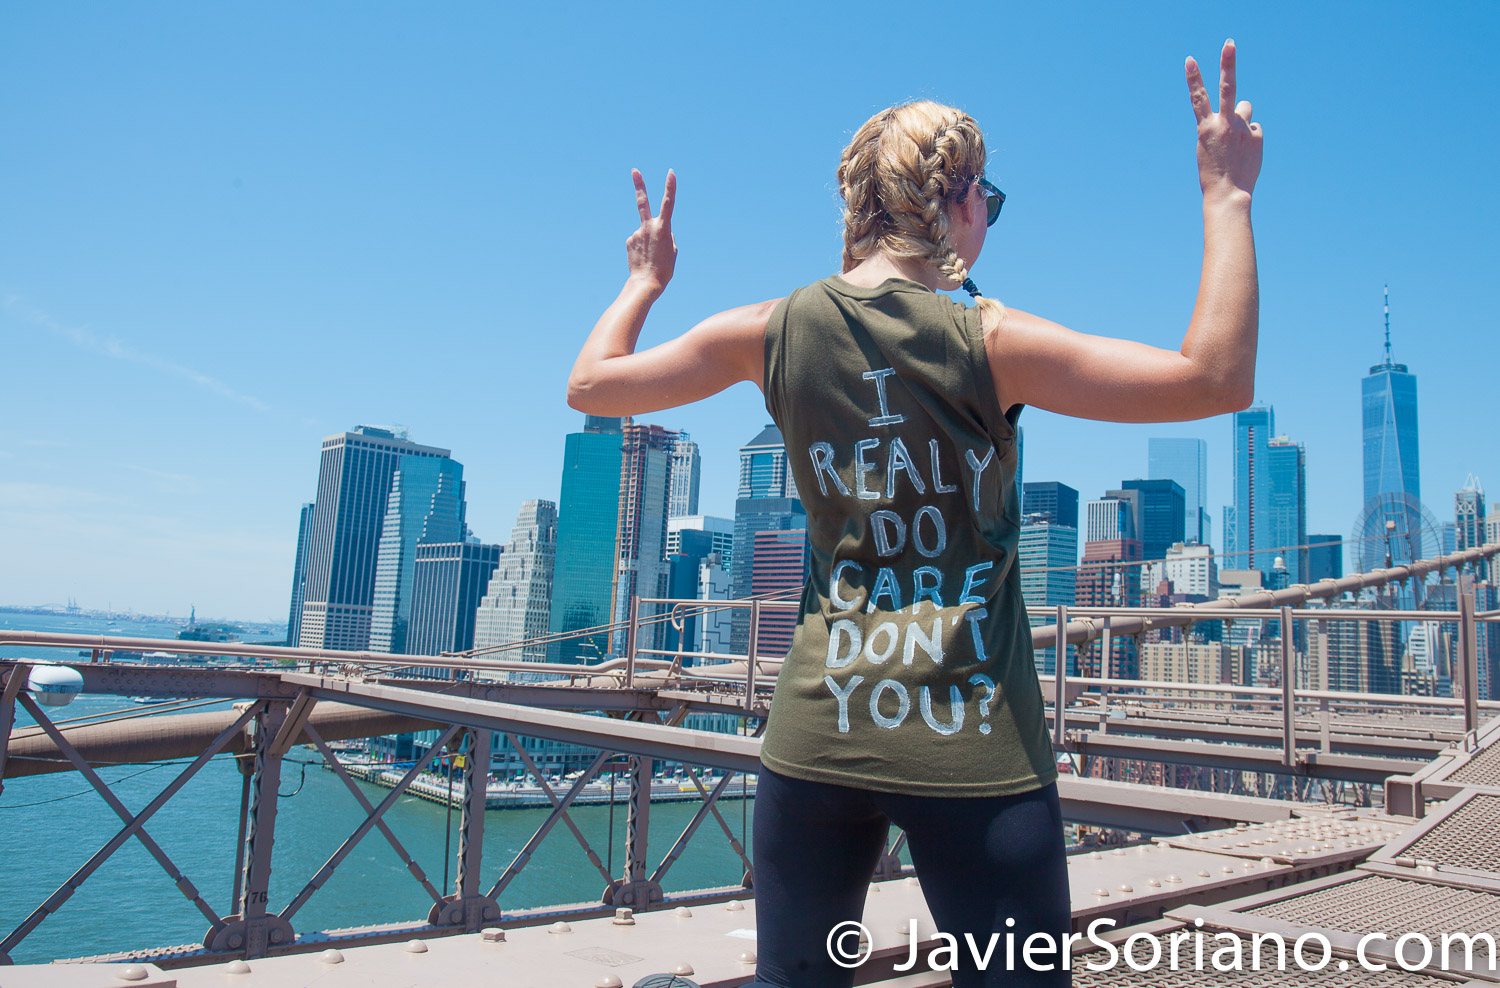 """6/30/2018. March: """"Families Belong Together."""" People crossing the Brooklyn Bridge. People's protectors are marching from Foley Square in Manhattan to Cadman Plaza in Brooklyn. The t-shirt says: """"I really do care. Don't you?"""" The jacket of Melania Trump said: """"I really don't care. Do you?"""" Photo by Javier Soriano/www.JavierSoriano.com"""